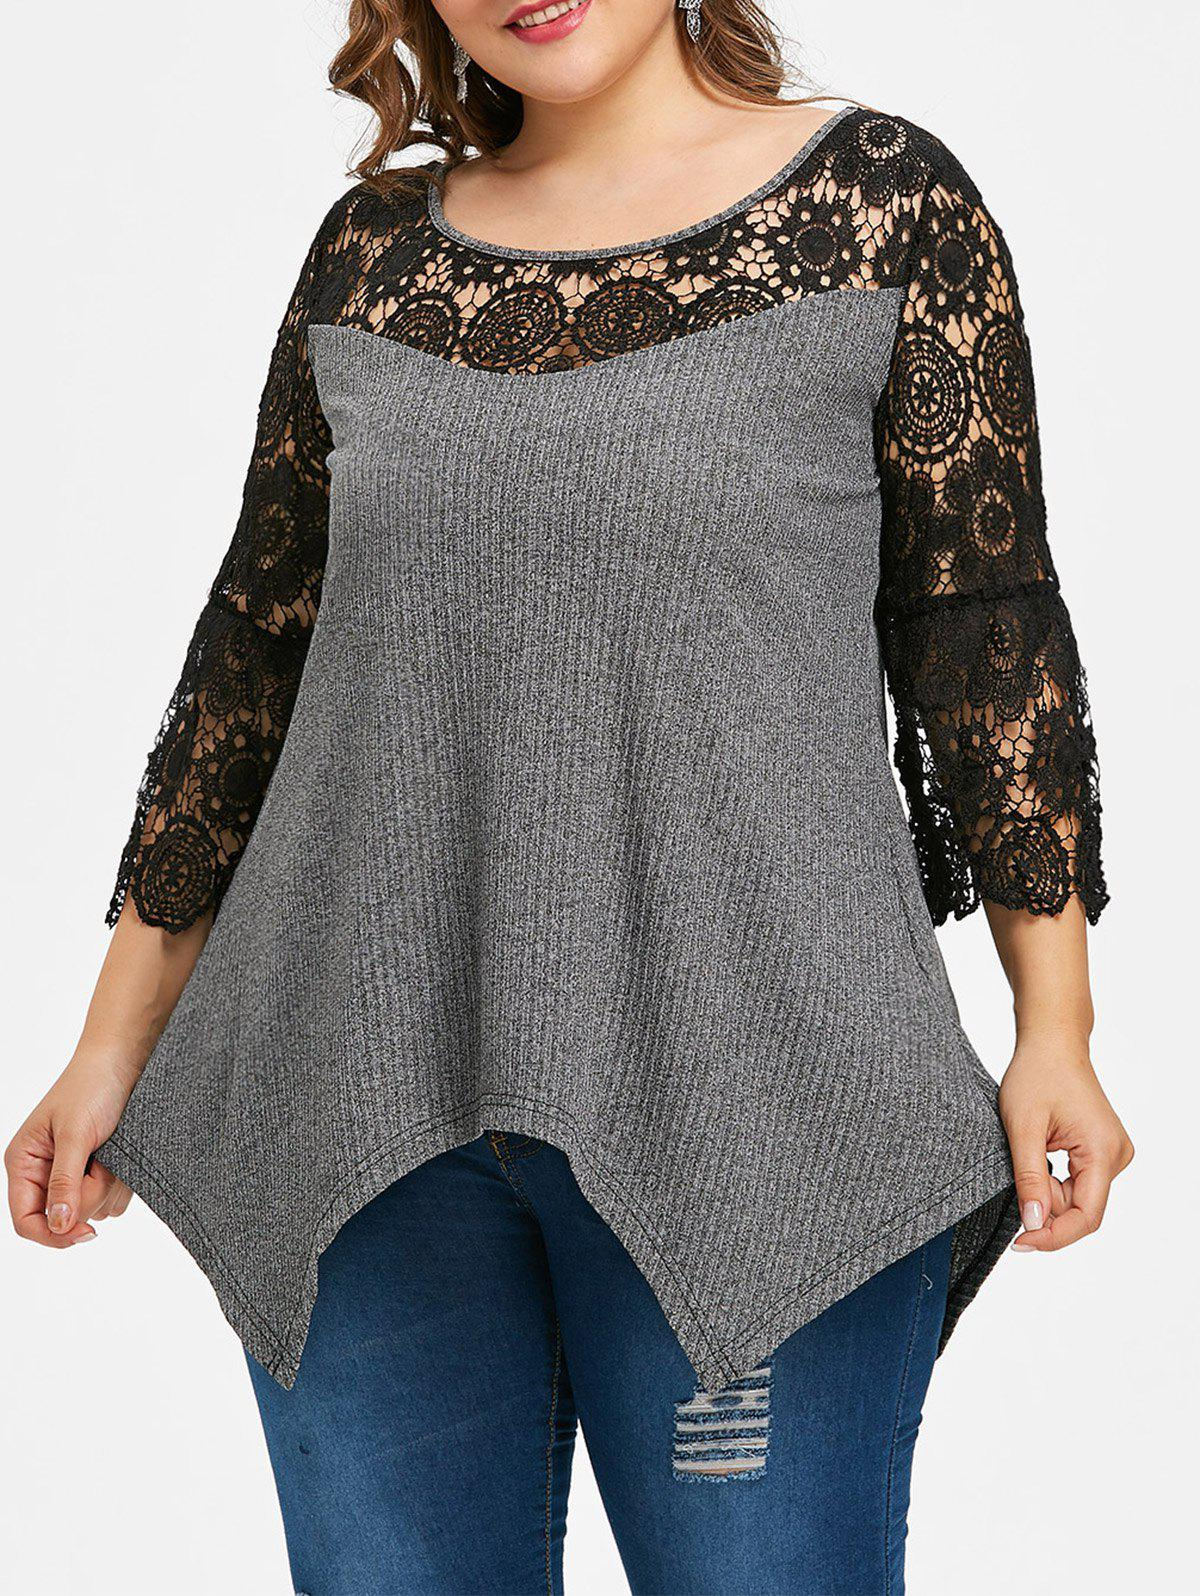 Plus Size Cutwork Lace Trim Ribbed T-shirt 1 102398 8[headers